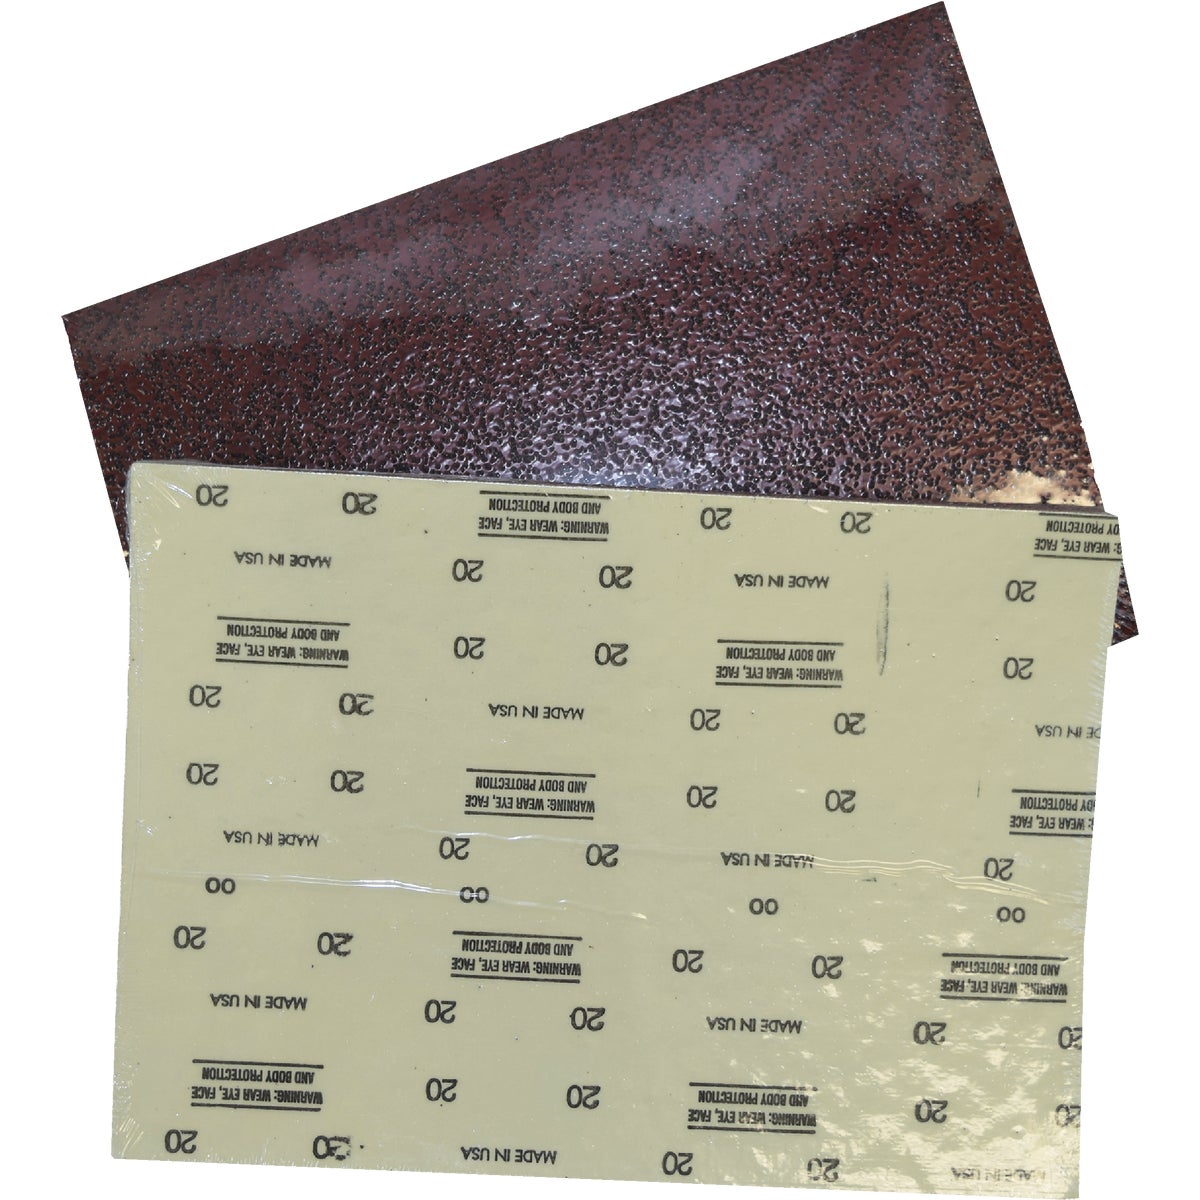 12X18 80G SANDING SHEET - 206-834080 by Virginia Abrasives